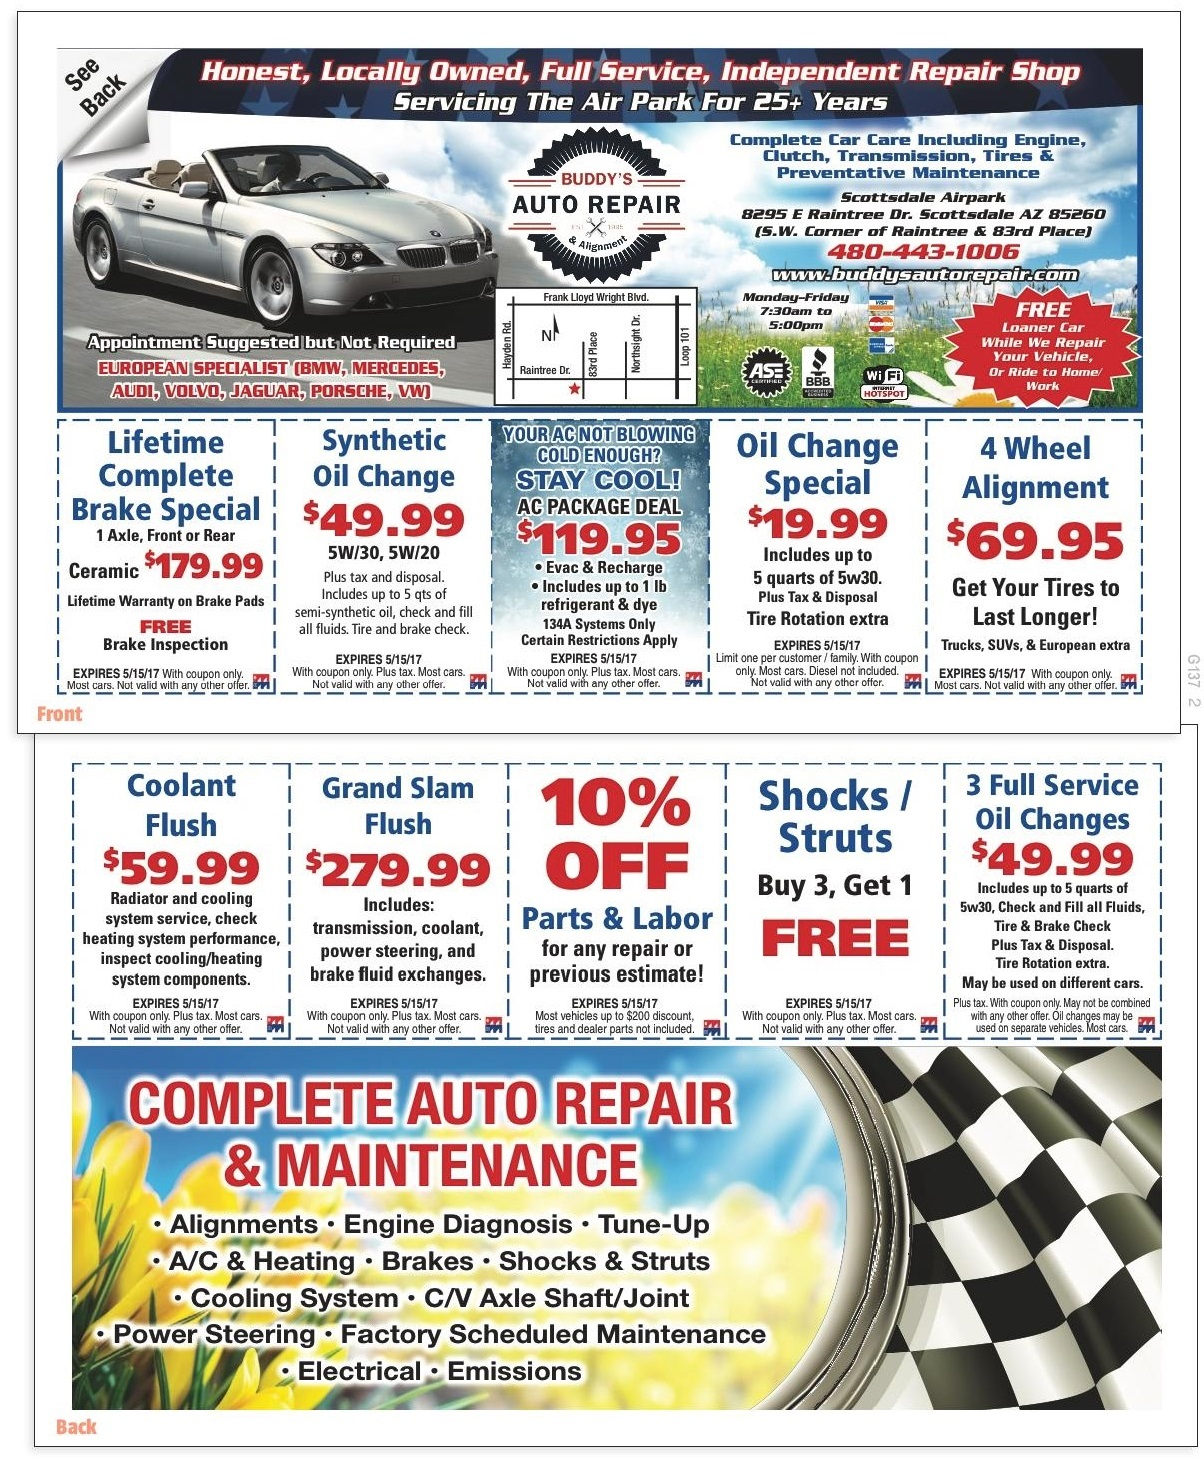 Complete Auto Repair Maintenance Specials Coupons Buddy S